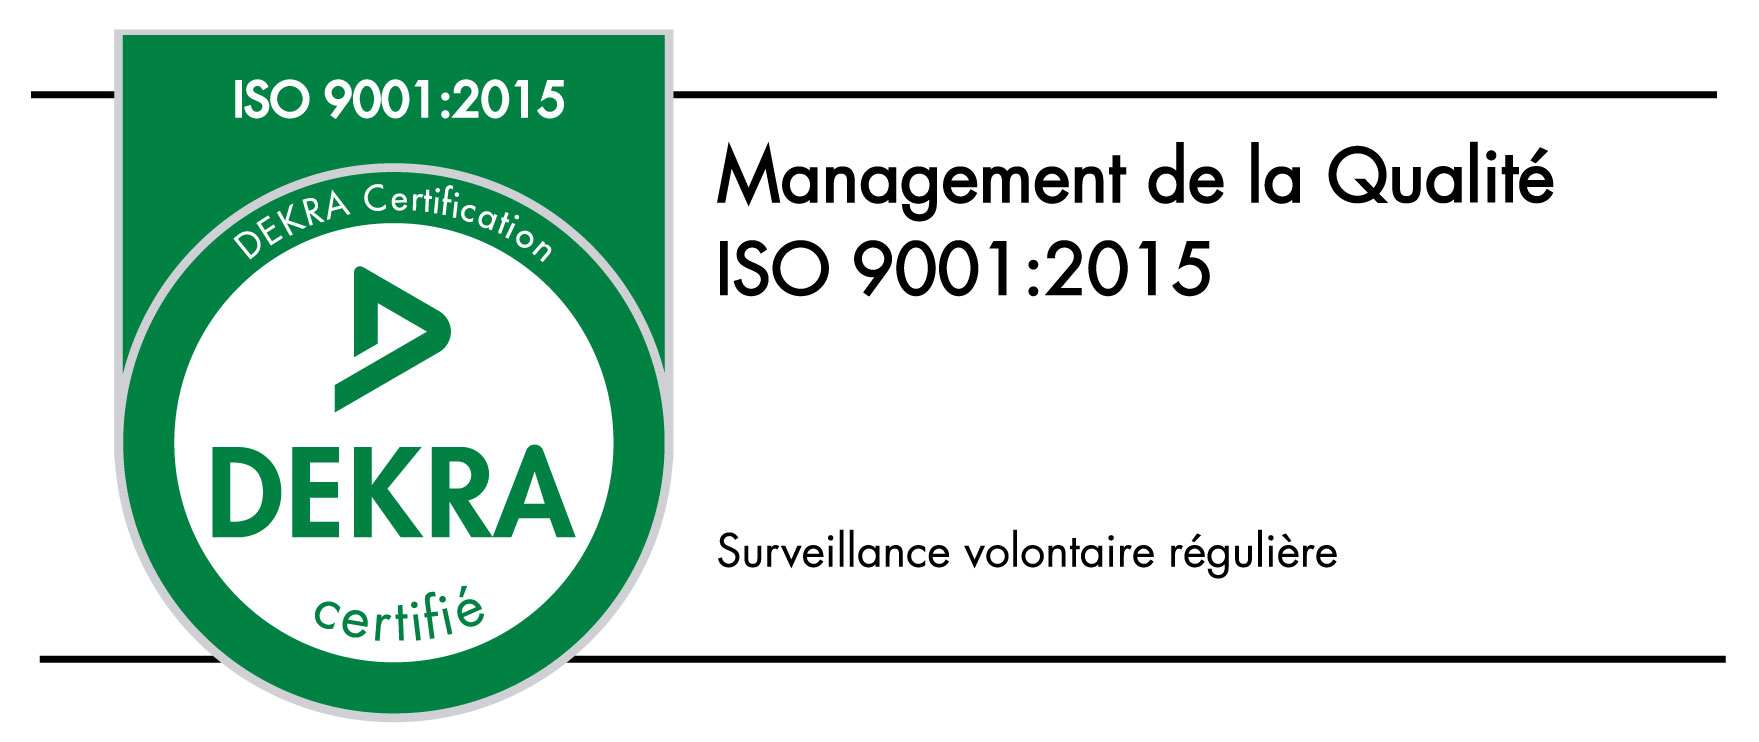 ISO-9001-2015-management-de-la-qualité